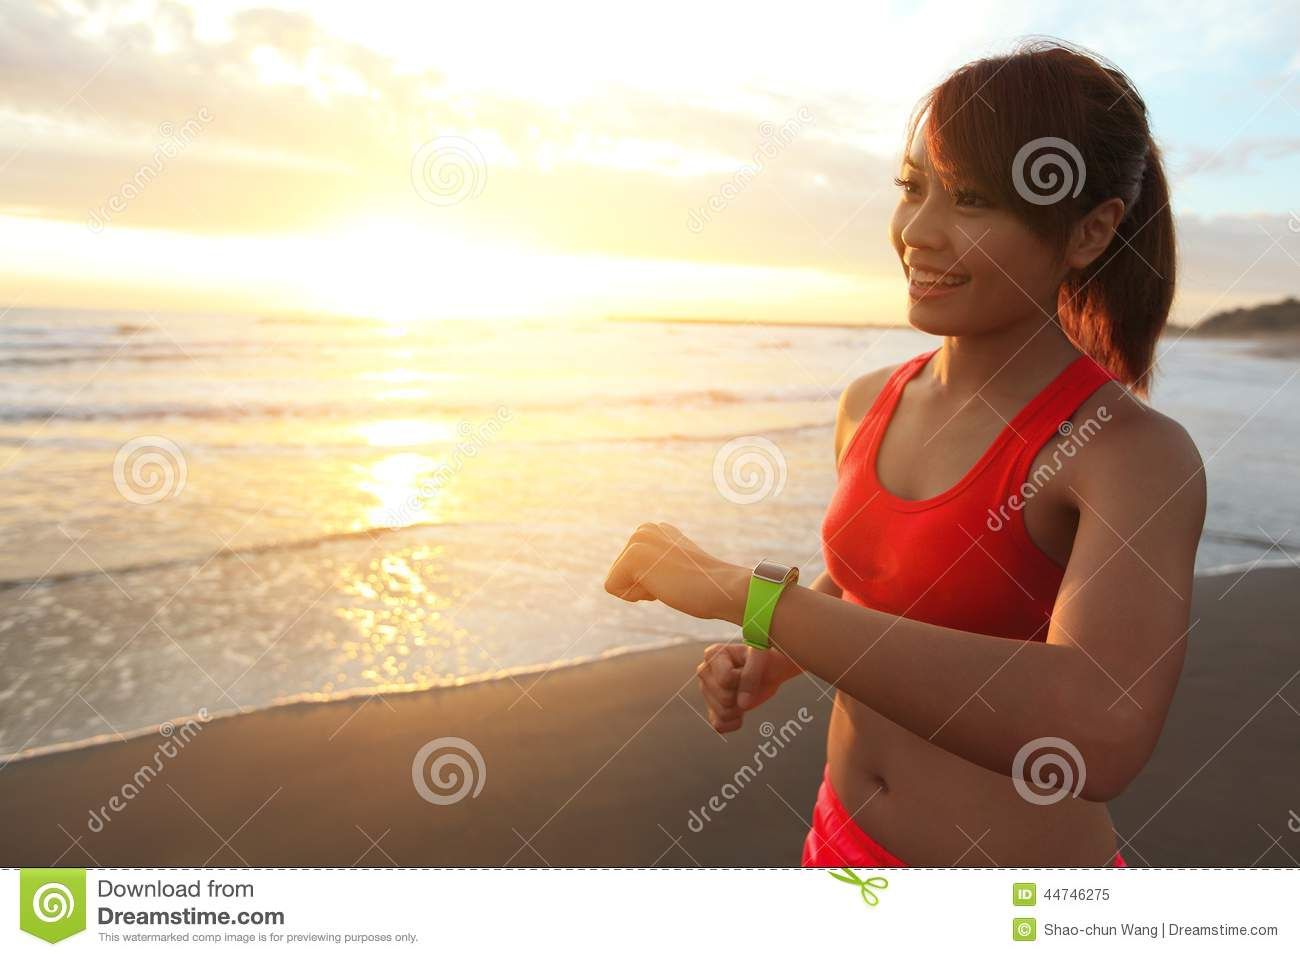 asian singles in sunrise beach Interactive and printable 65079 zip code maps, population demographics, sunrise beach mo real estate costs, rental prices, and home values.